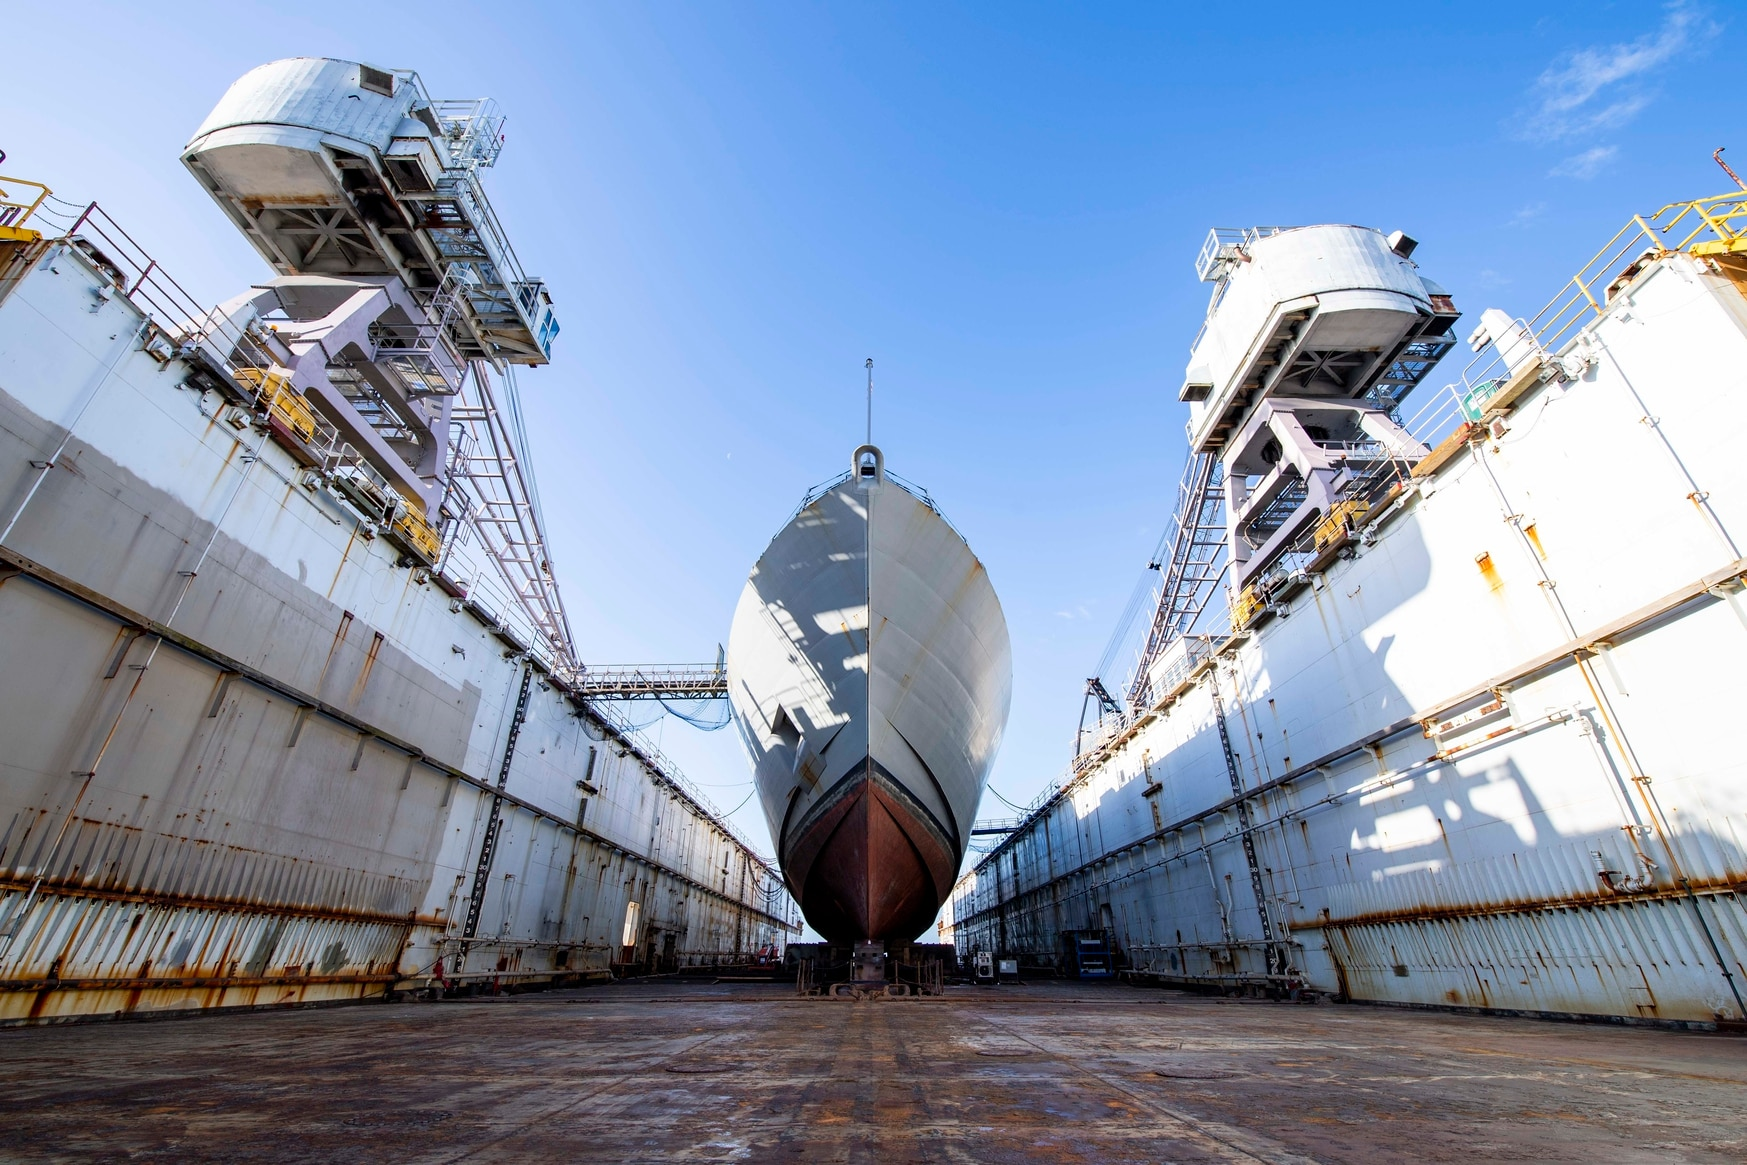 The Freedom-class littoral combat ship Detroit receives regularly scheduled maintenance at BAE Systems' shipyard in Jacksonville, Fla. $40 billion in cuts proposed by the acting secretary of the Navy could hit maintenance accounts hard. (MC3 Nathan T. Beard/U.S. Navy)